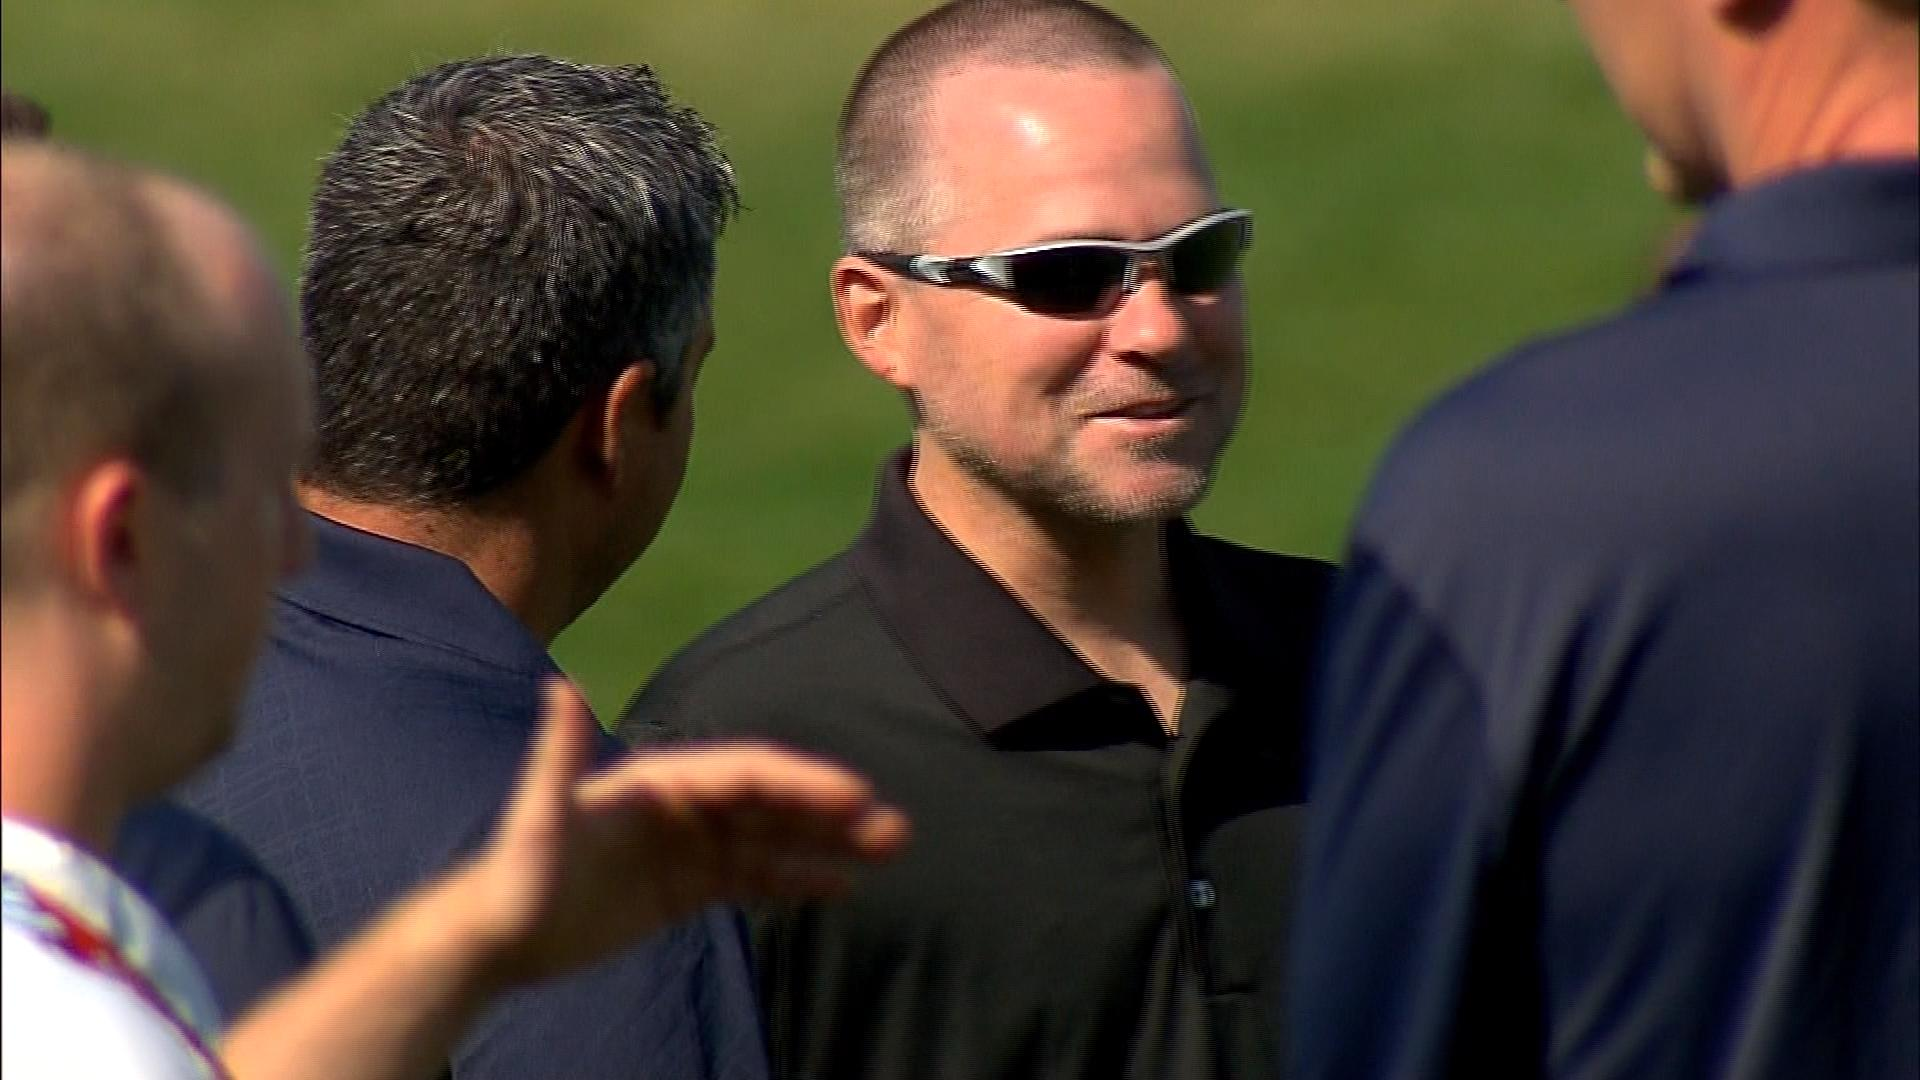 Denver Nuggets head coach Michael Malone at Broncos practice on Monday (credit: CBS)